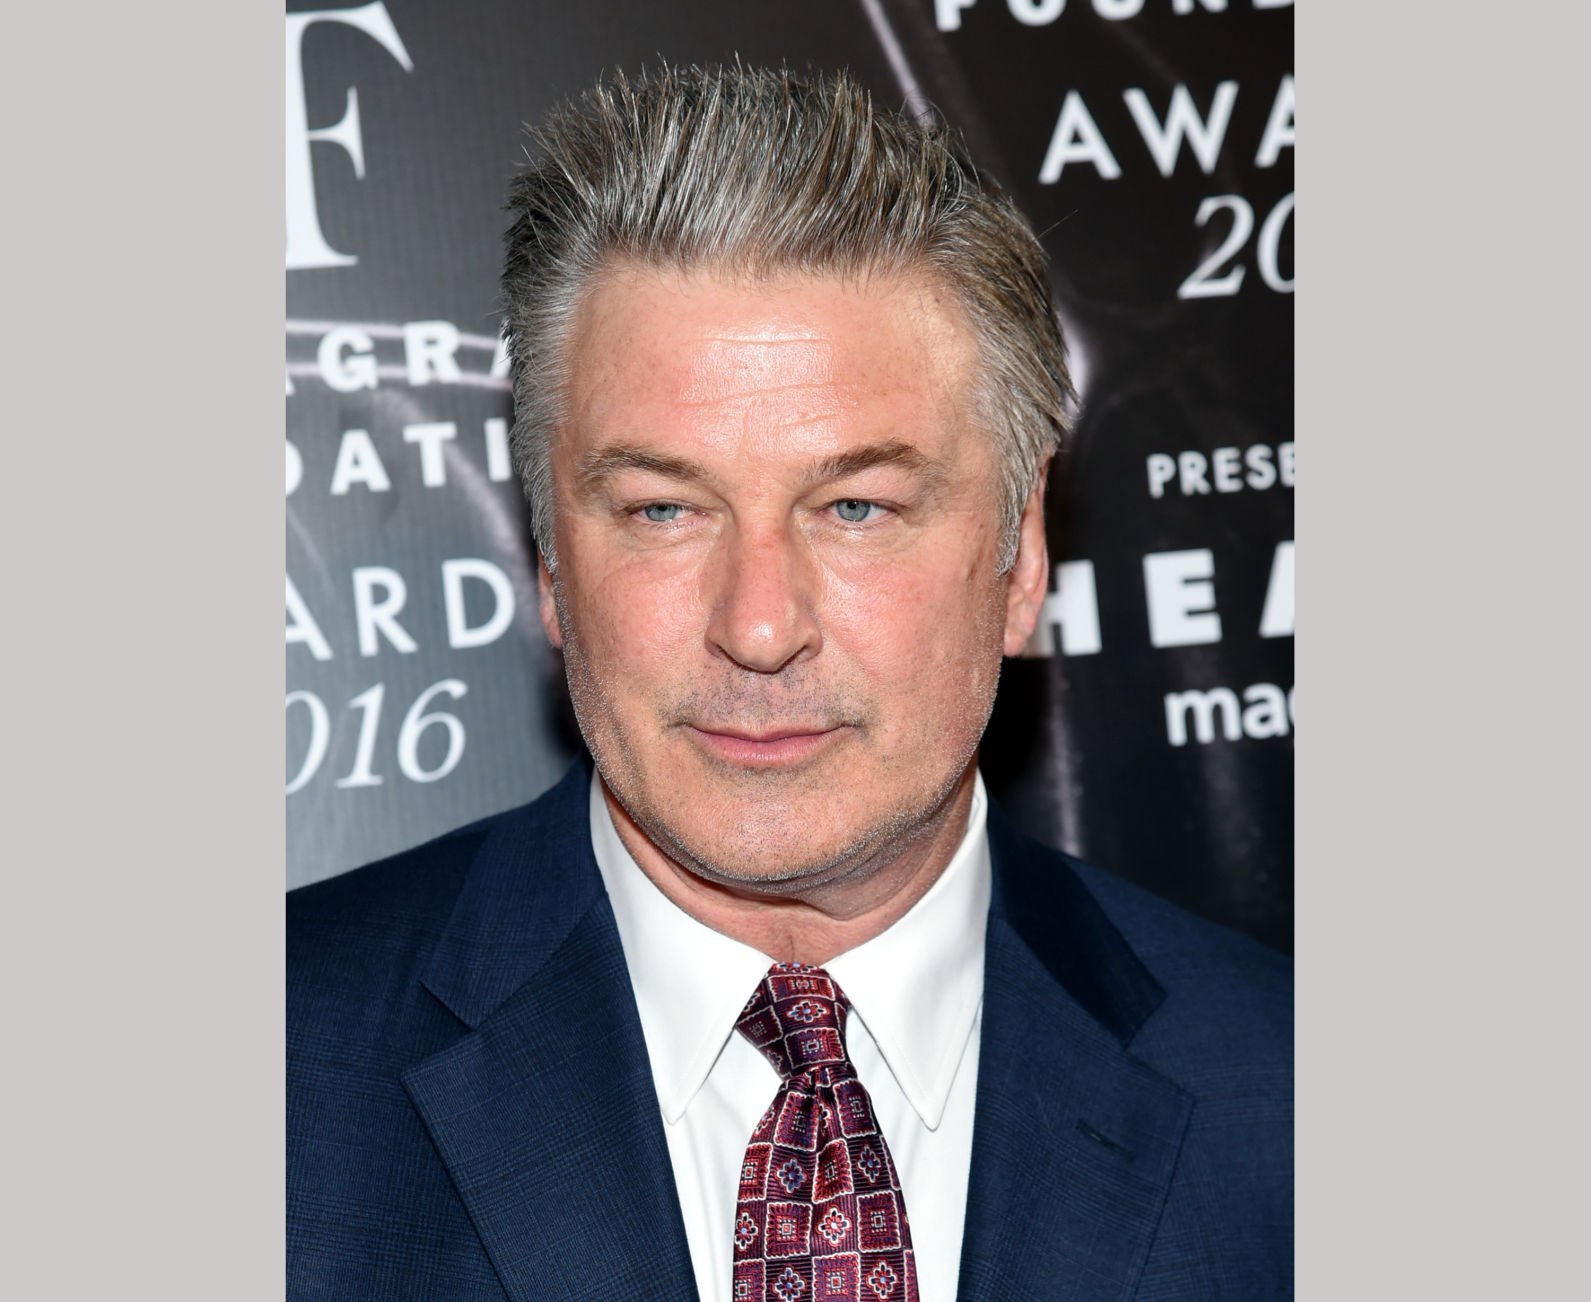 Alec Baldwin perfectly skewers Donald Trump in 'SNL' Season 42 premiere